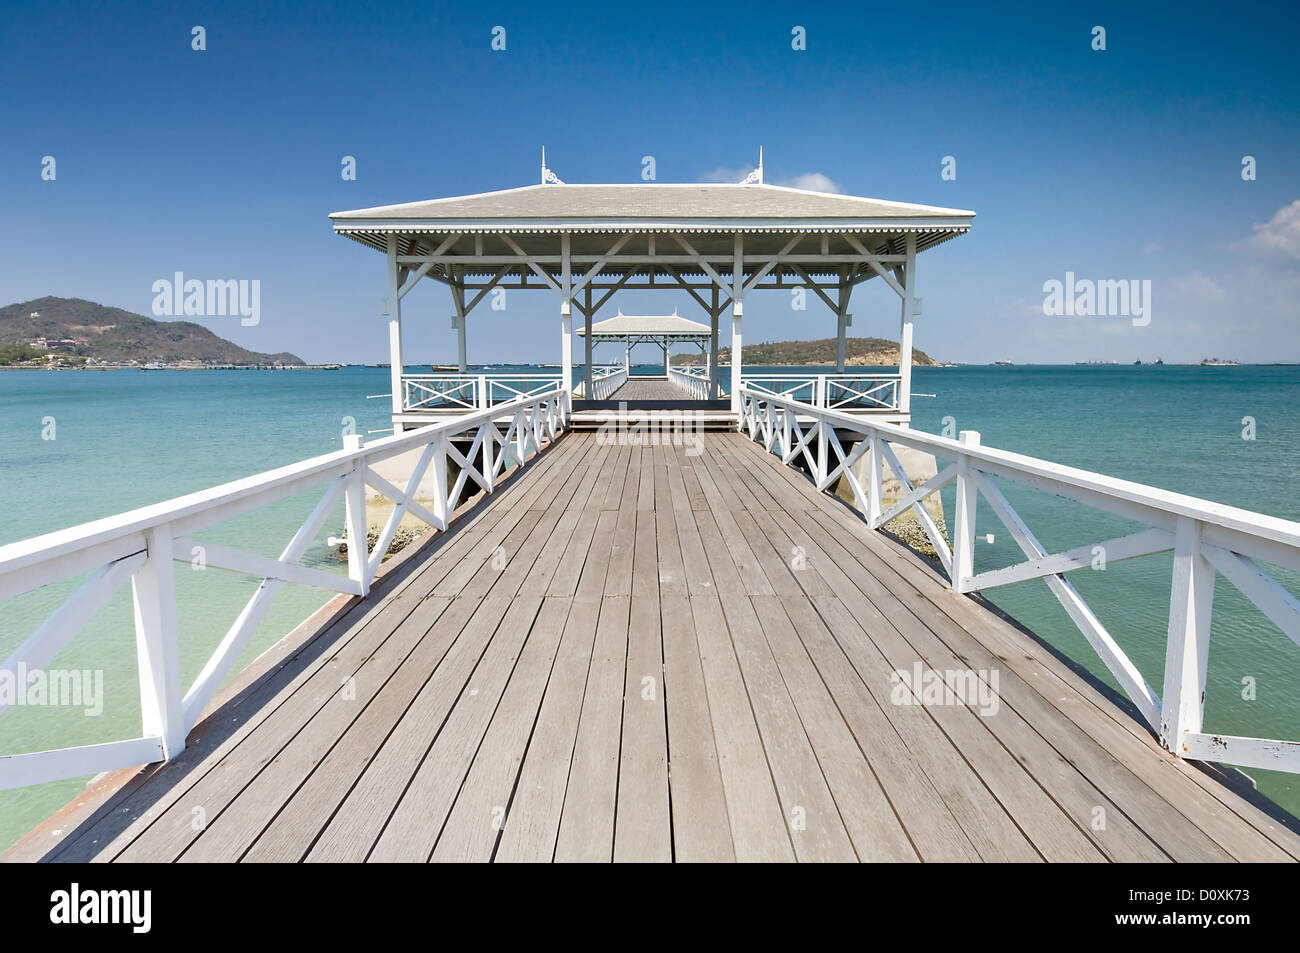 Ferien photos ferien images alamy - Laguna piscine allemagne ...